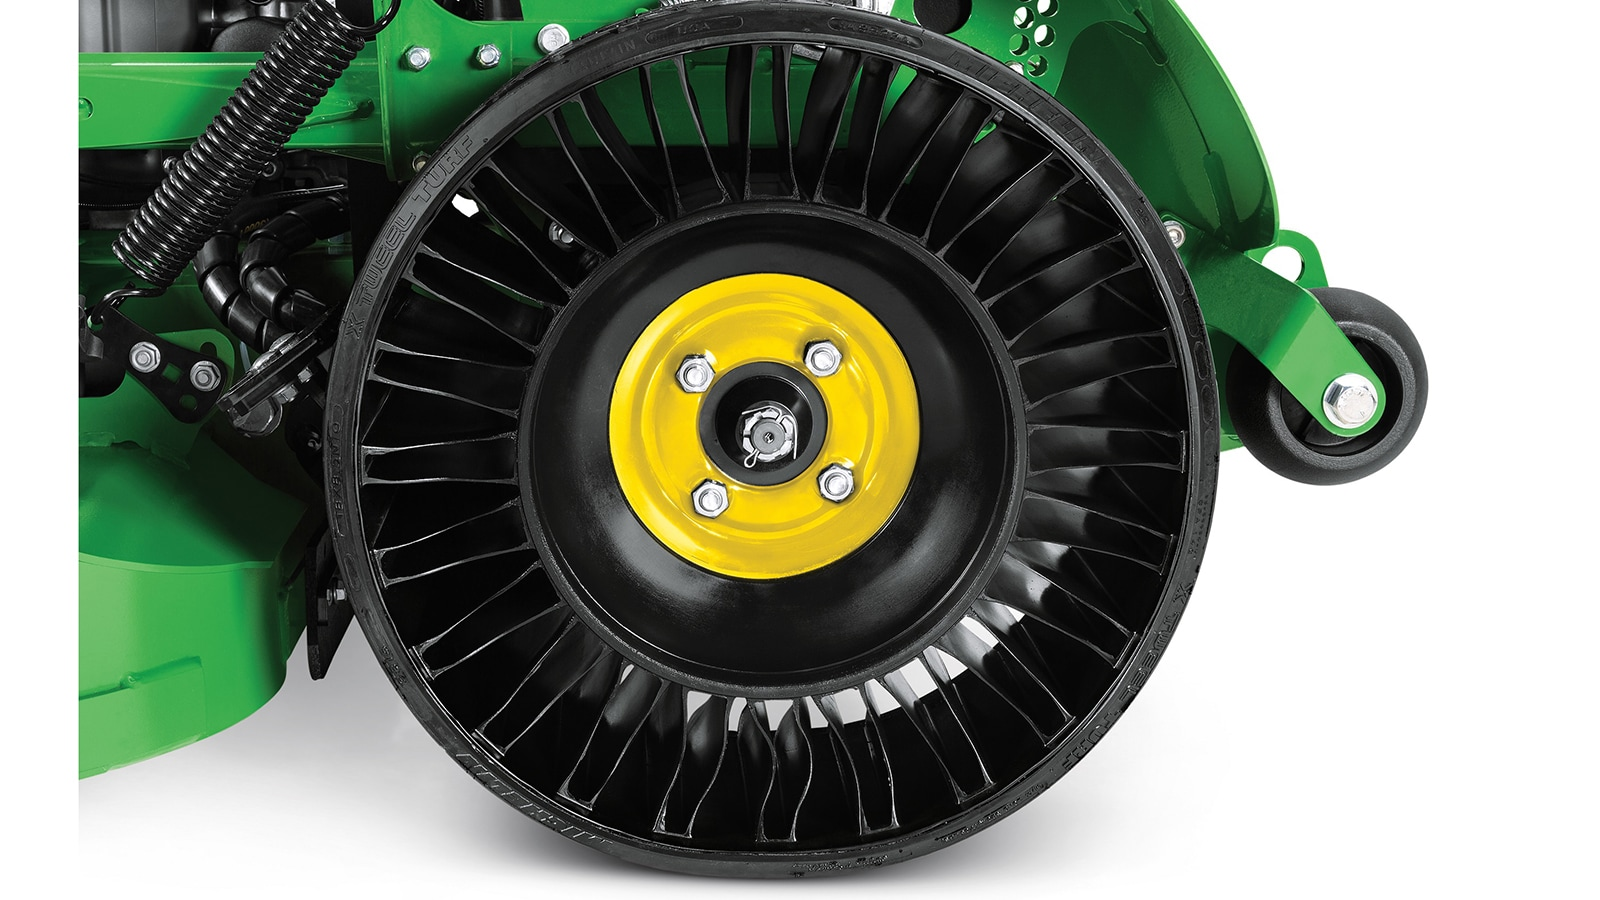 The MICHELIN X TWEEL TURF Airless Radial Tire eliminates flats